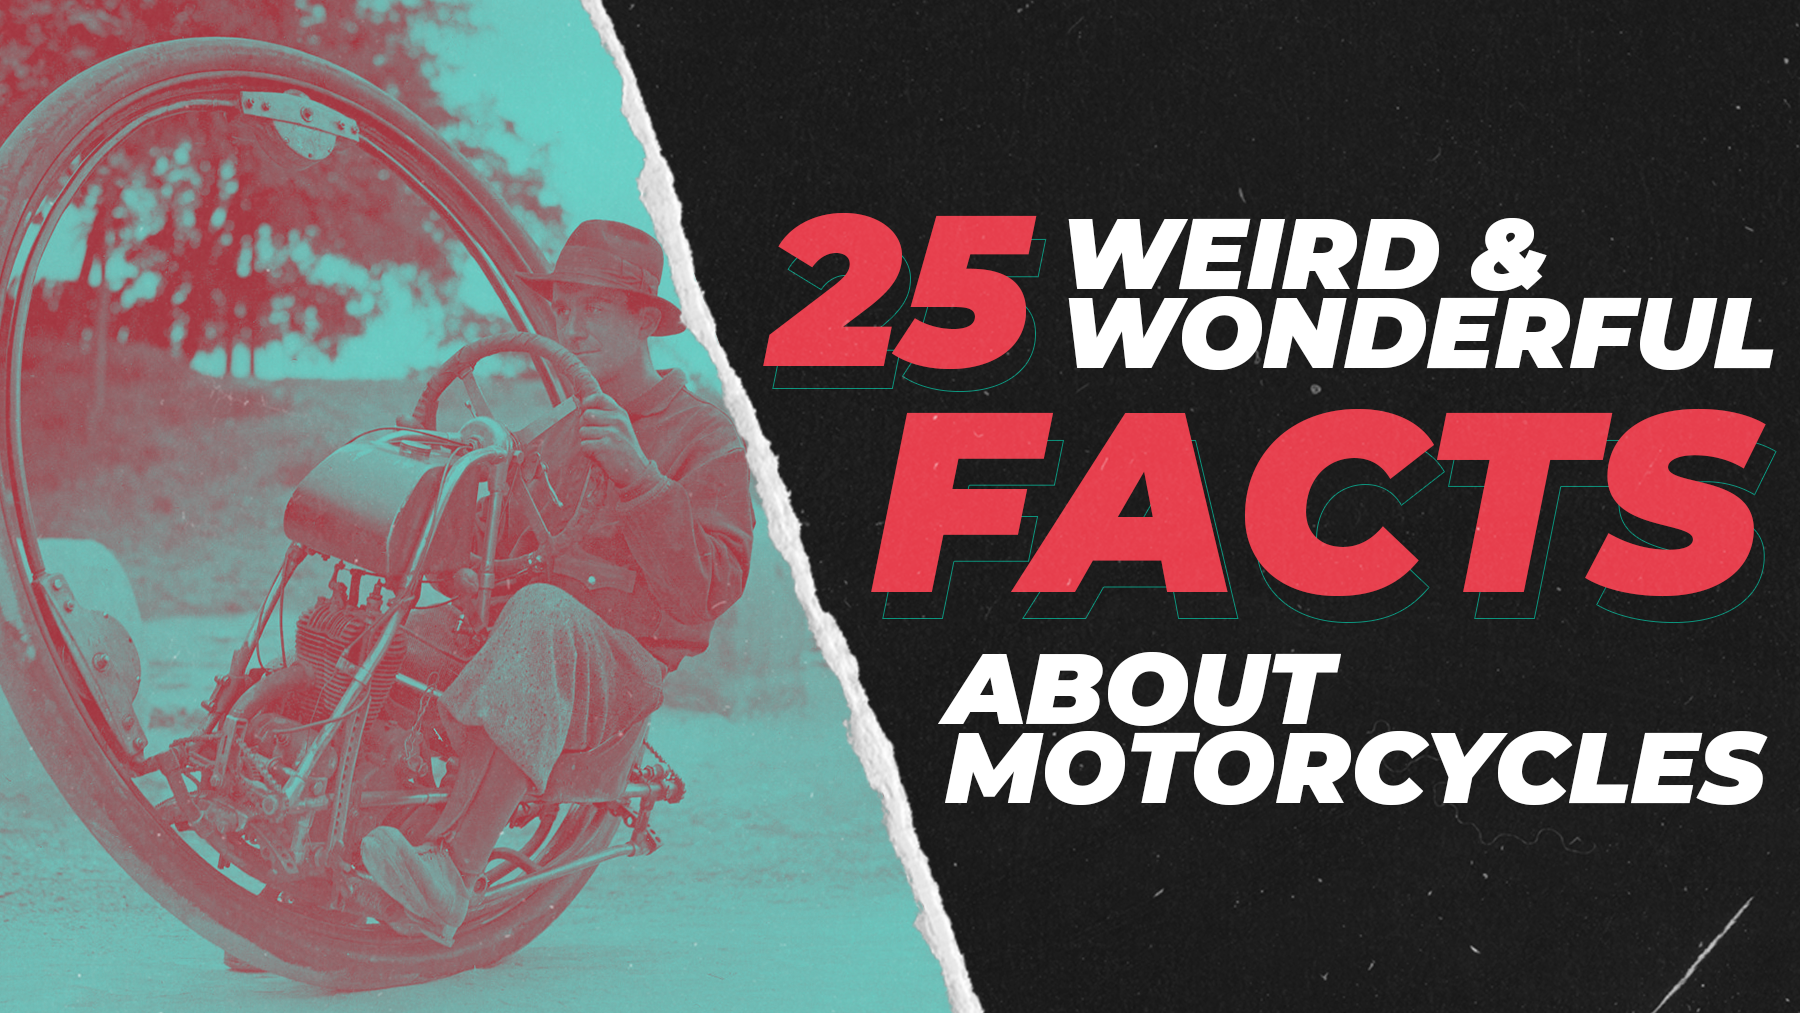 25 Weird And Wonderful Facts About Motorcycles